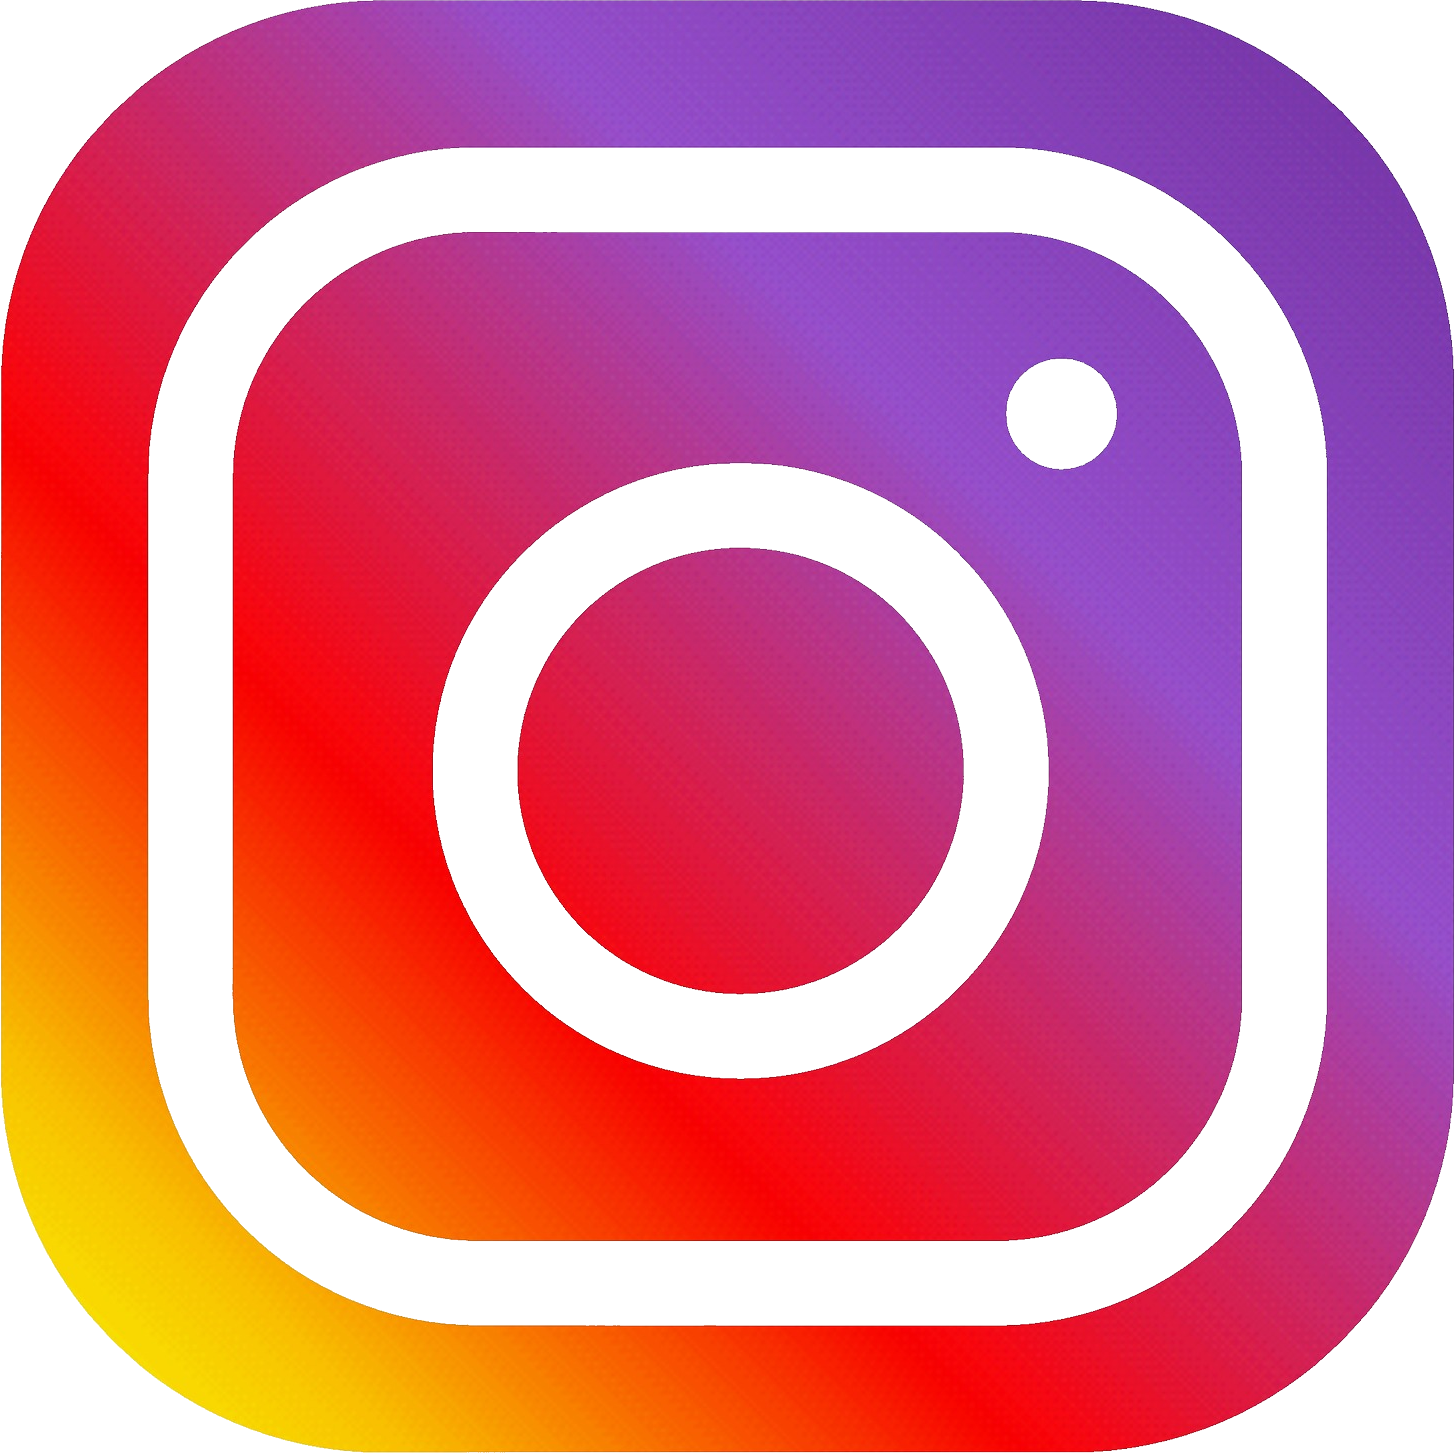 the now corporation on instagram